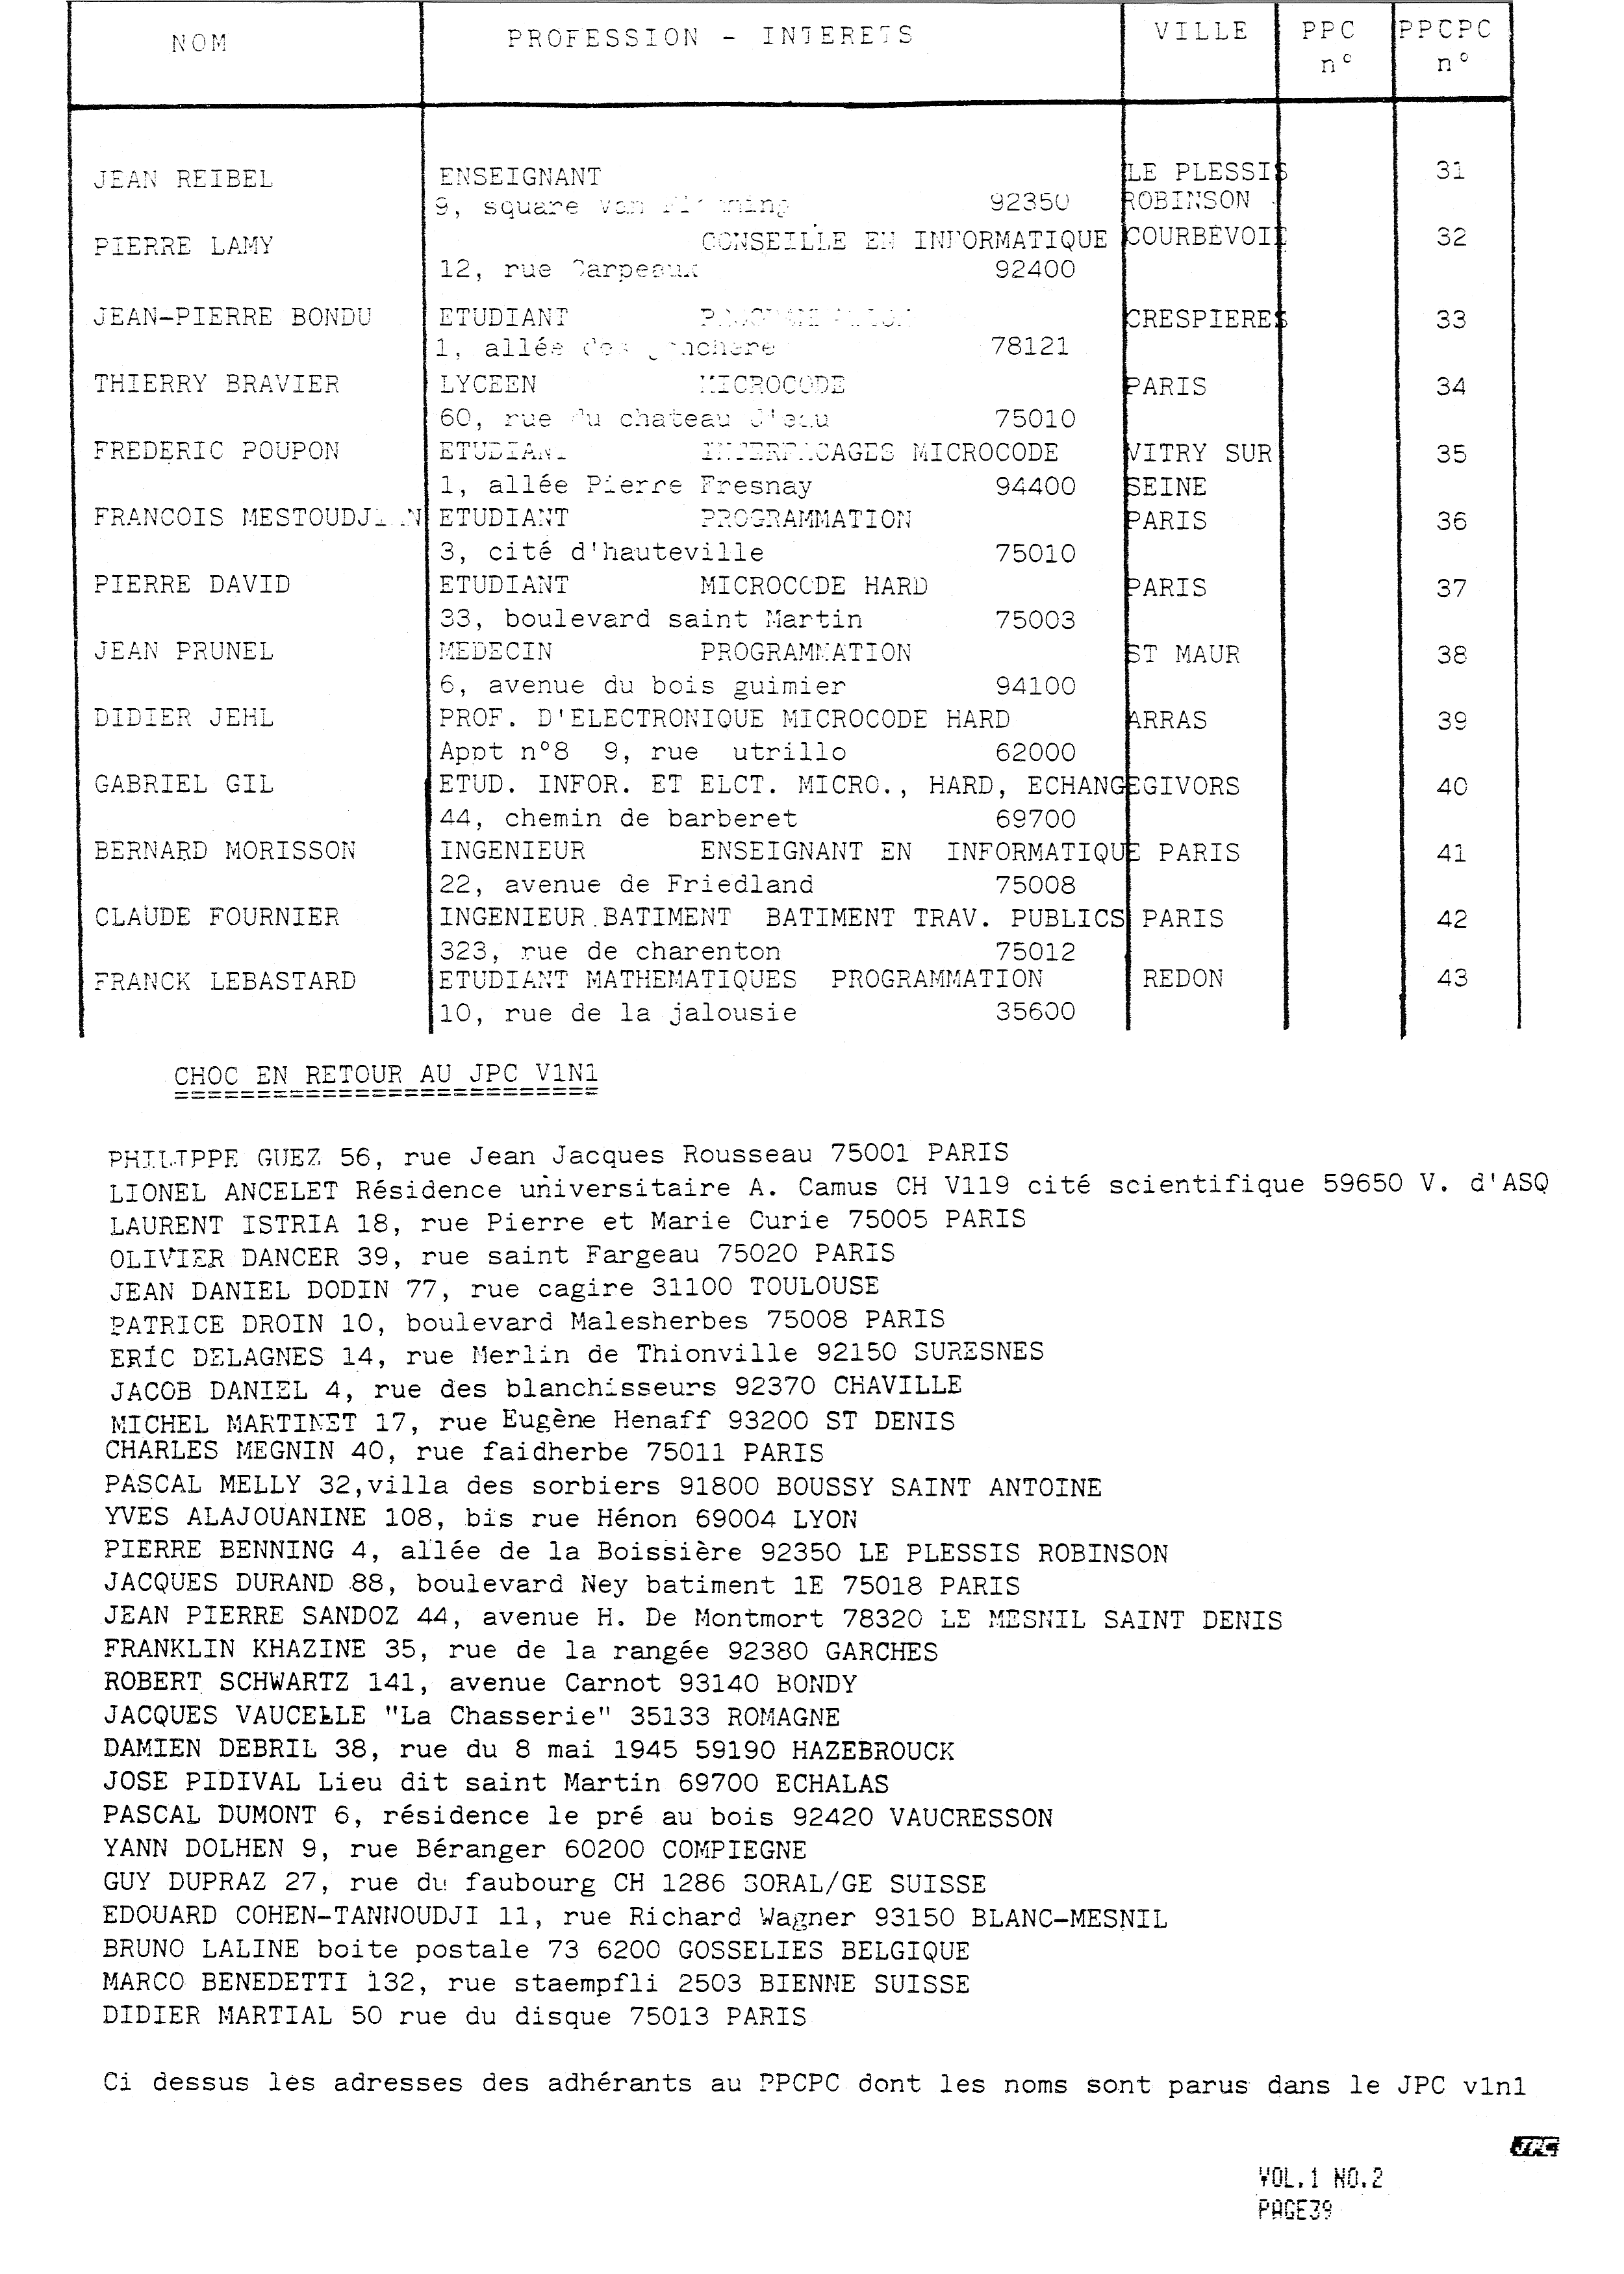 Jp-2-page-39-1000